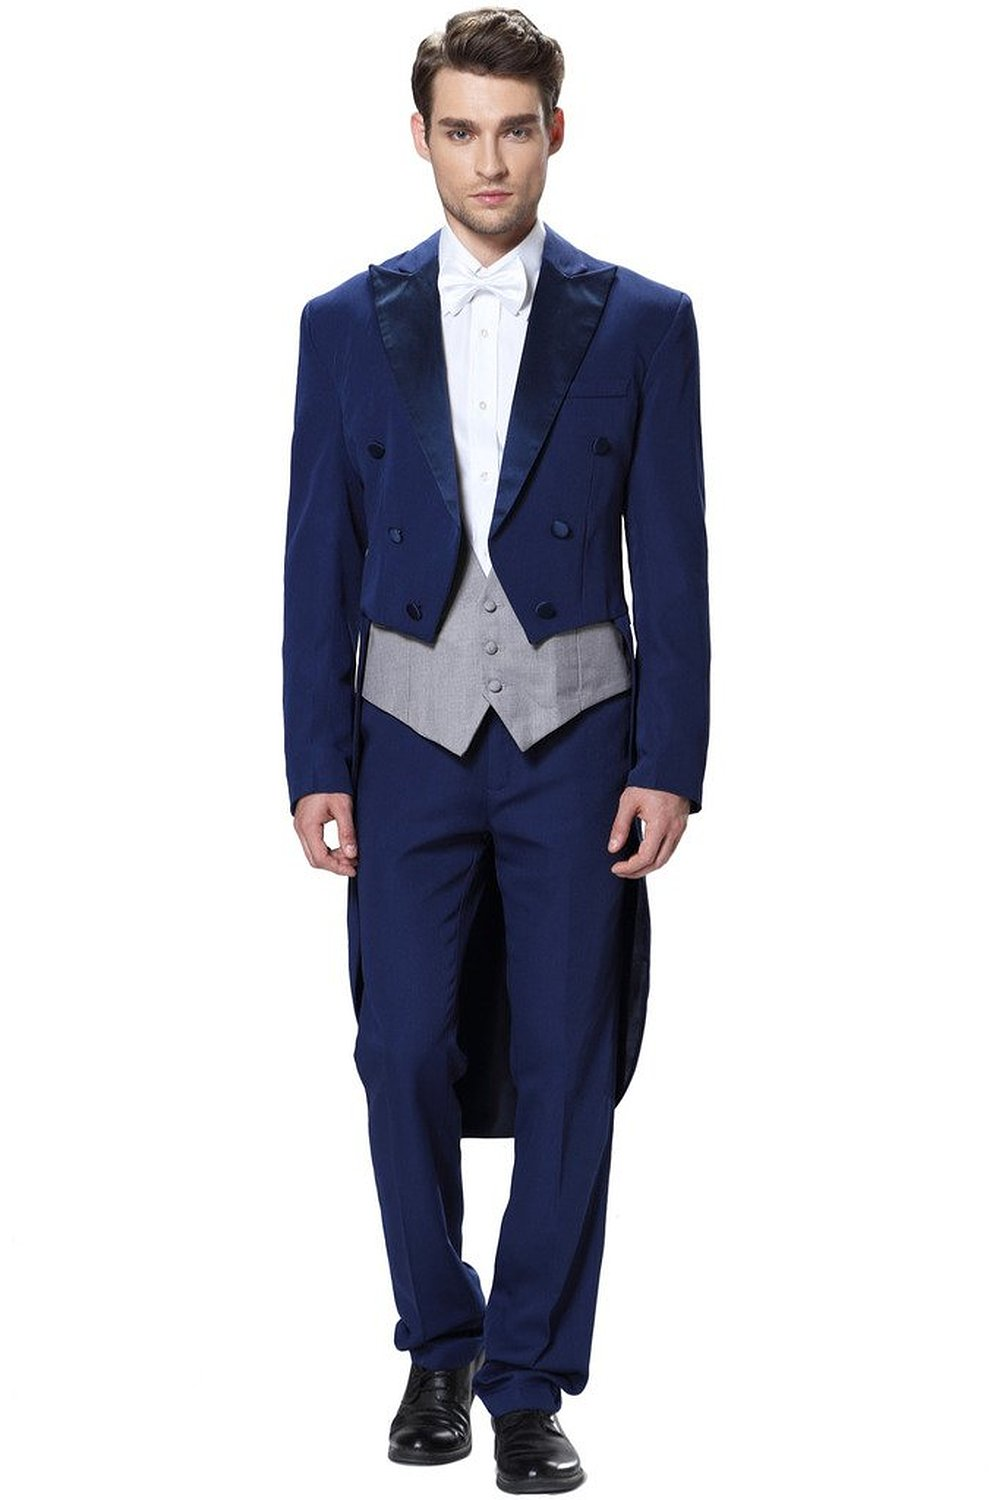 Compare Prices on Mens Clothing Wedding- Online Shopping/Buy Low ...